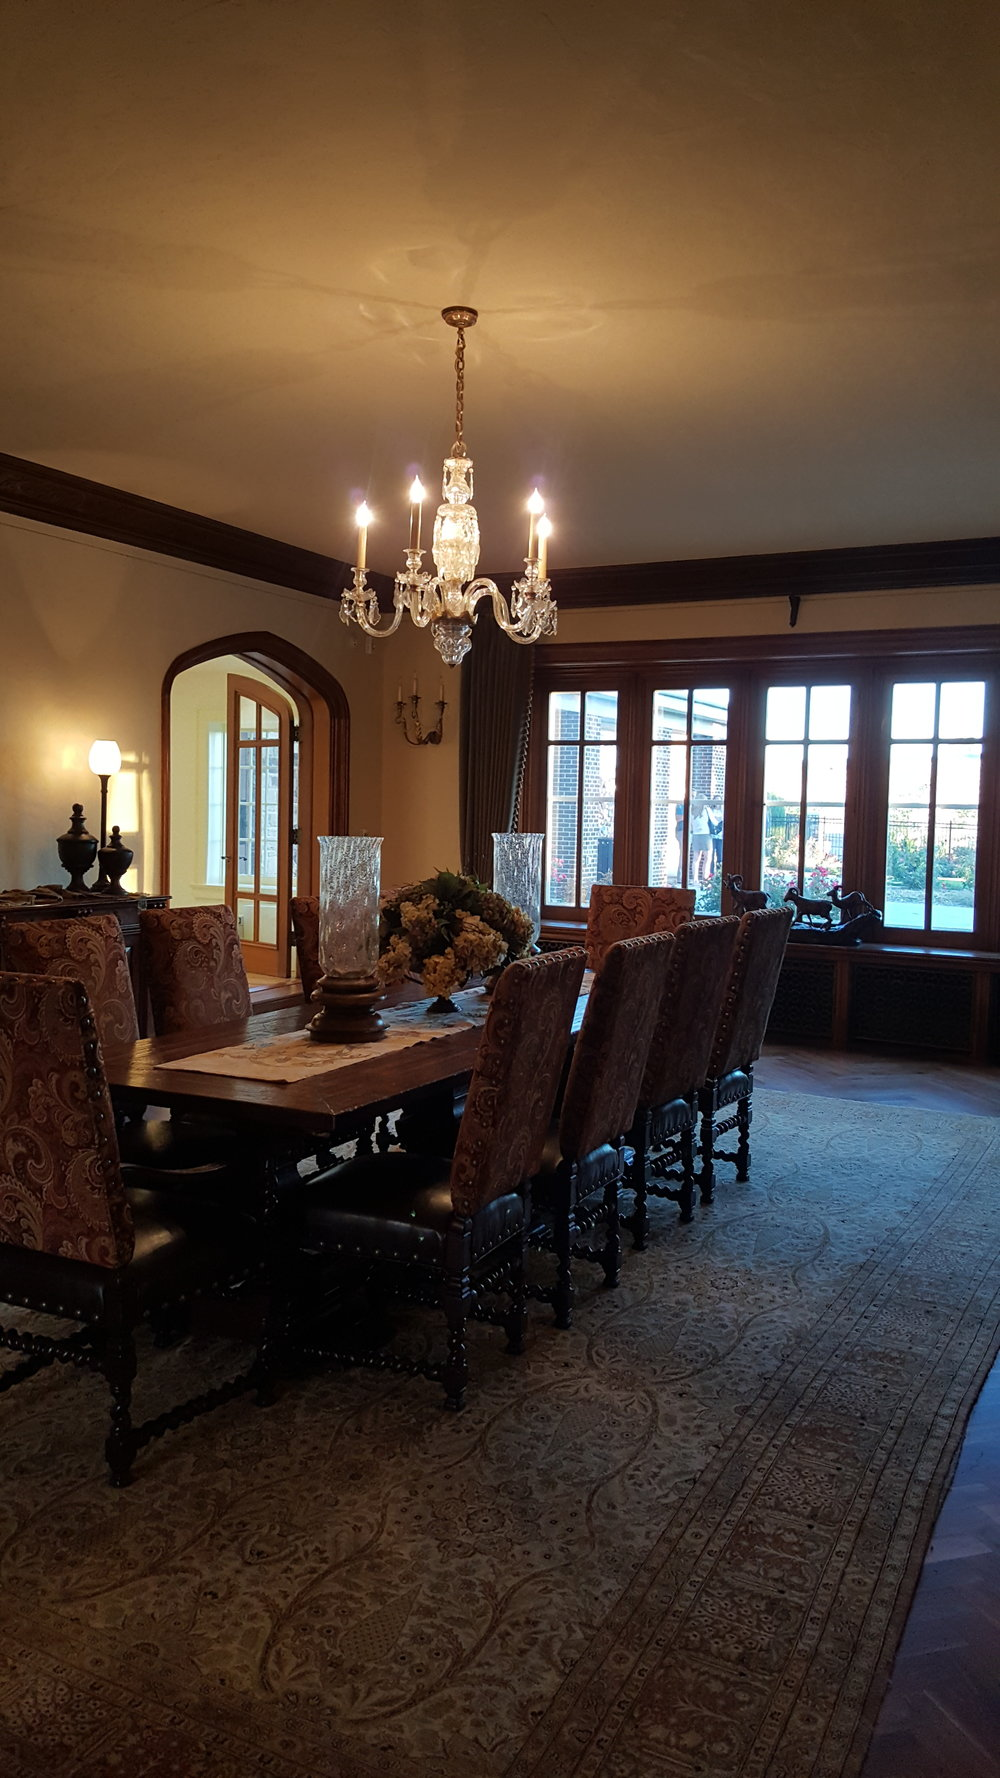 The Dining Room at Highlands Ranch Mansion. Photo: Michelle Tebow